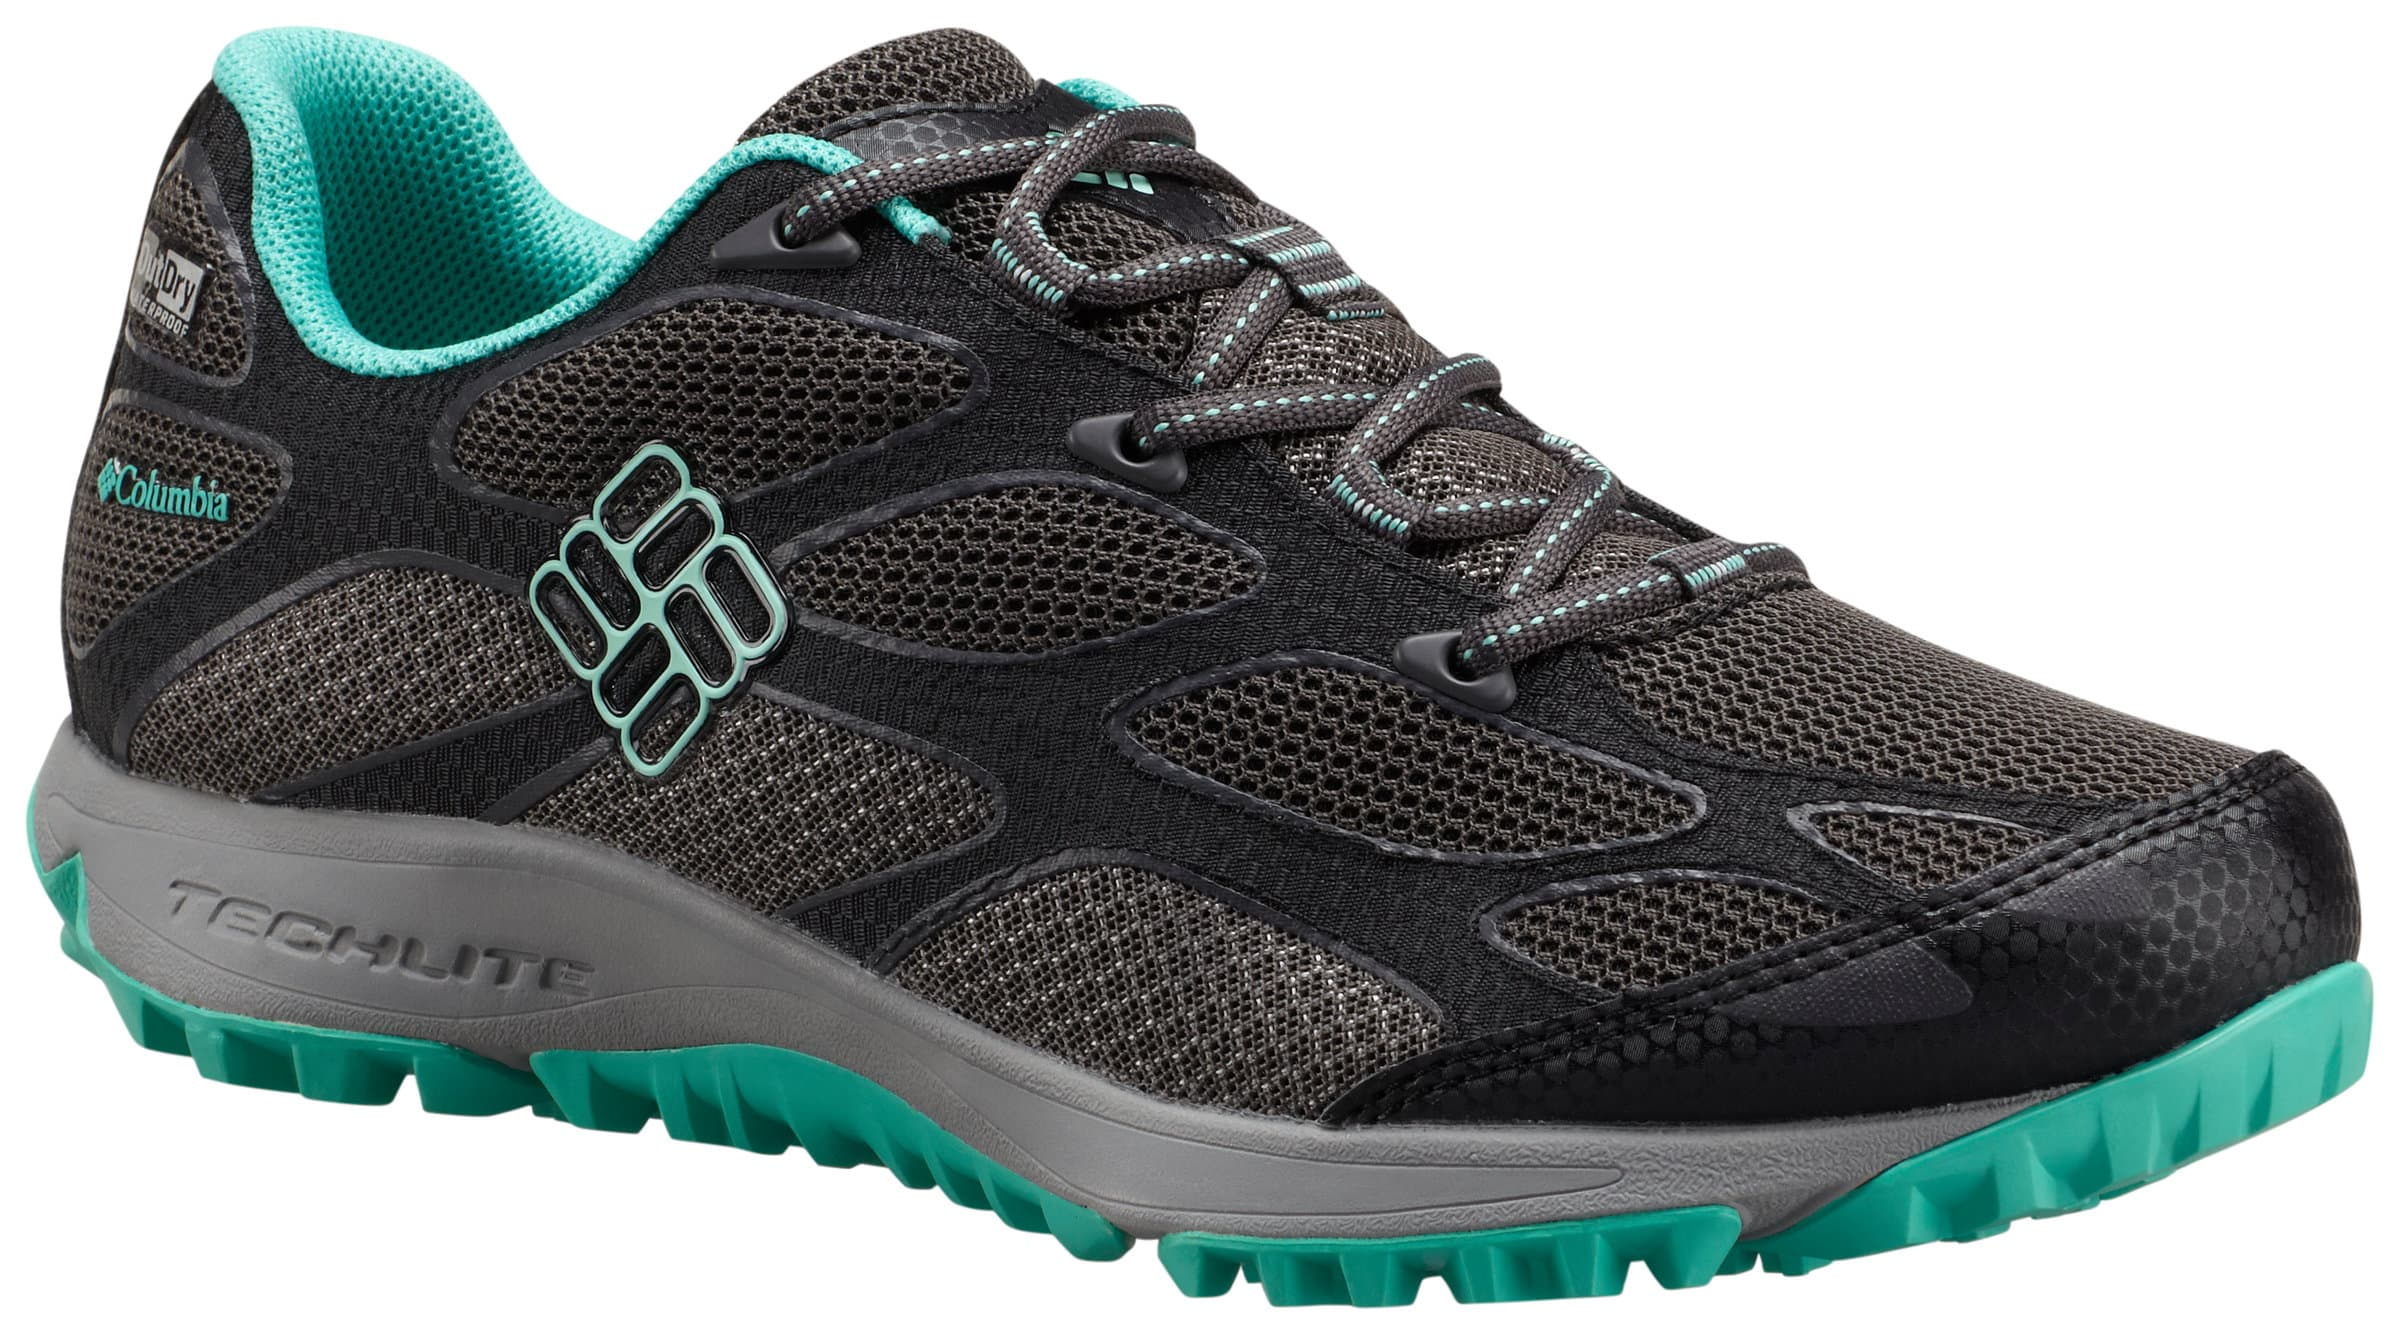 Columbia Conspiracy IV OutDry Chaussures polyvalentes pour femme